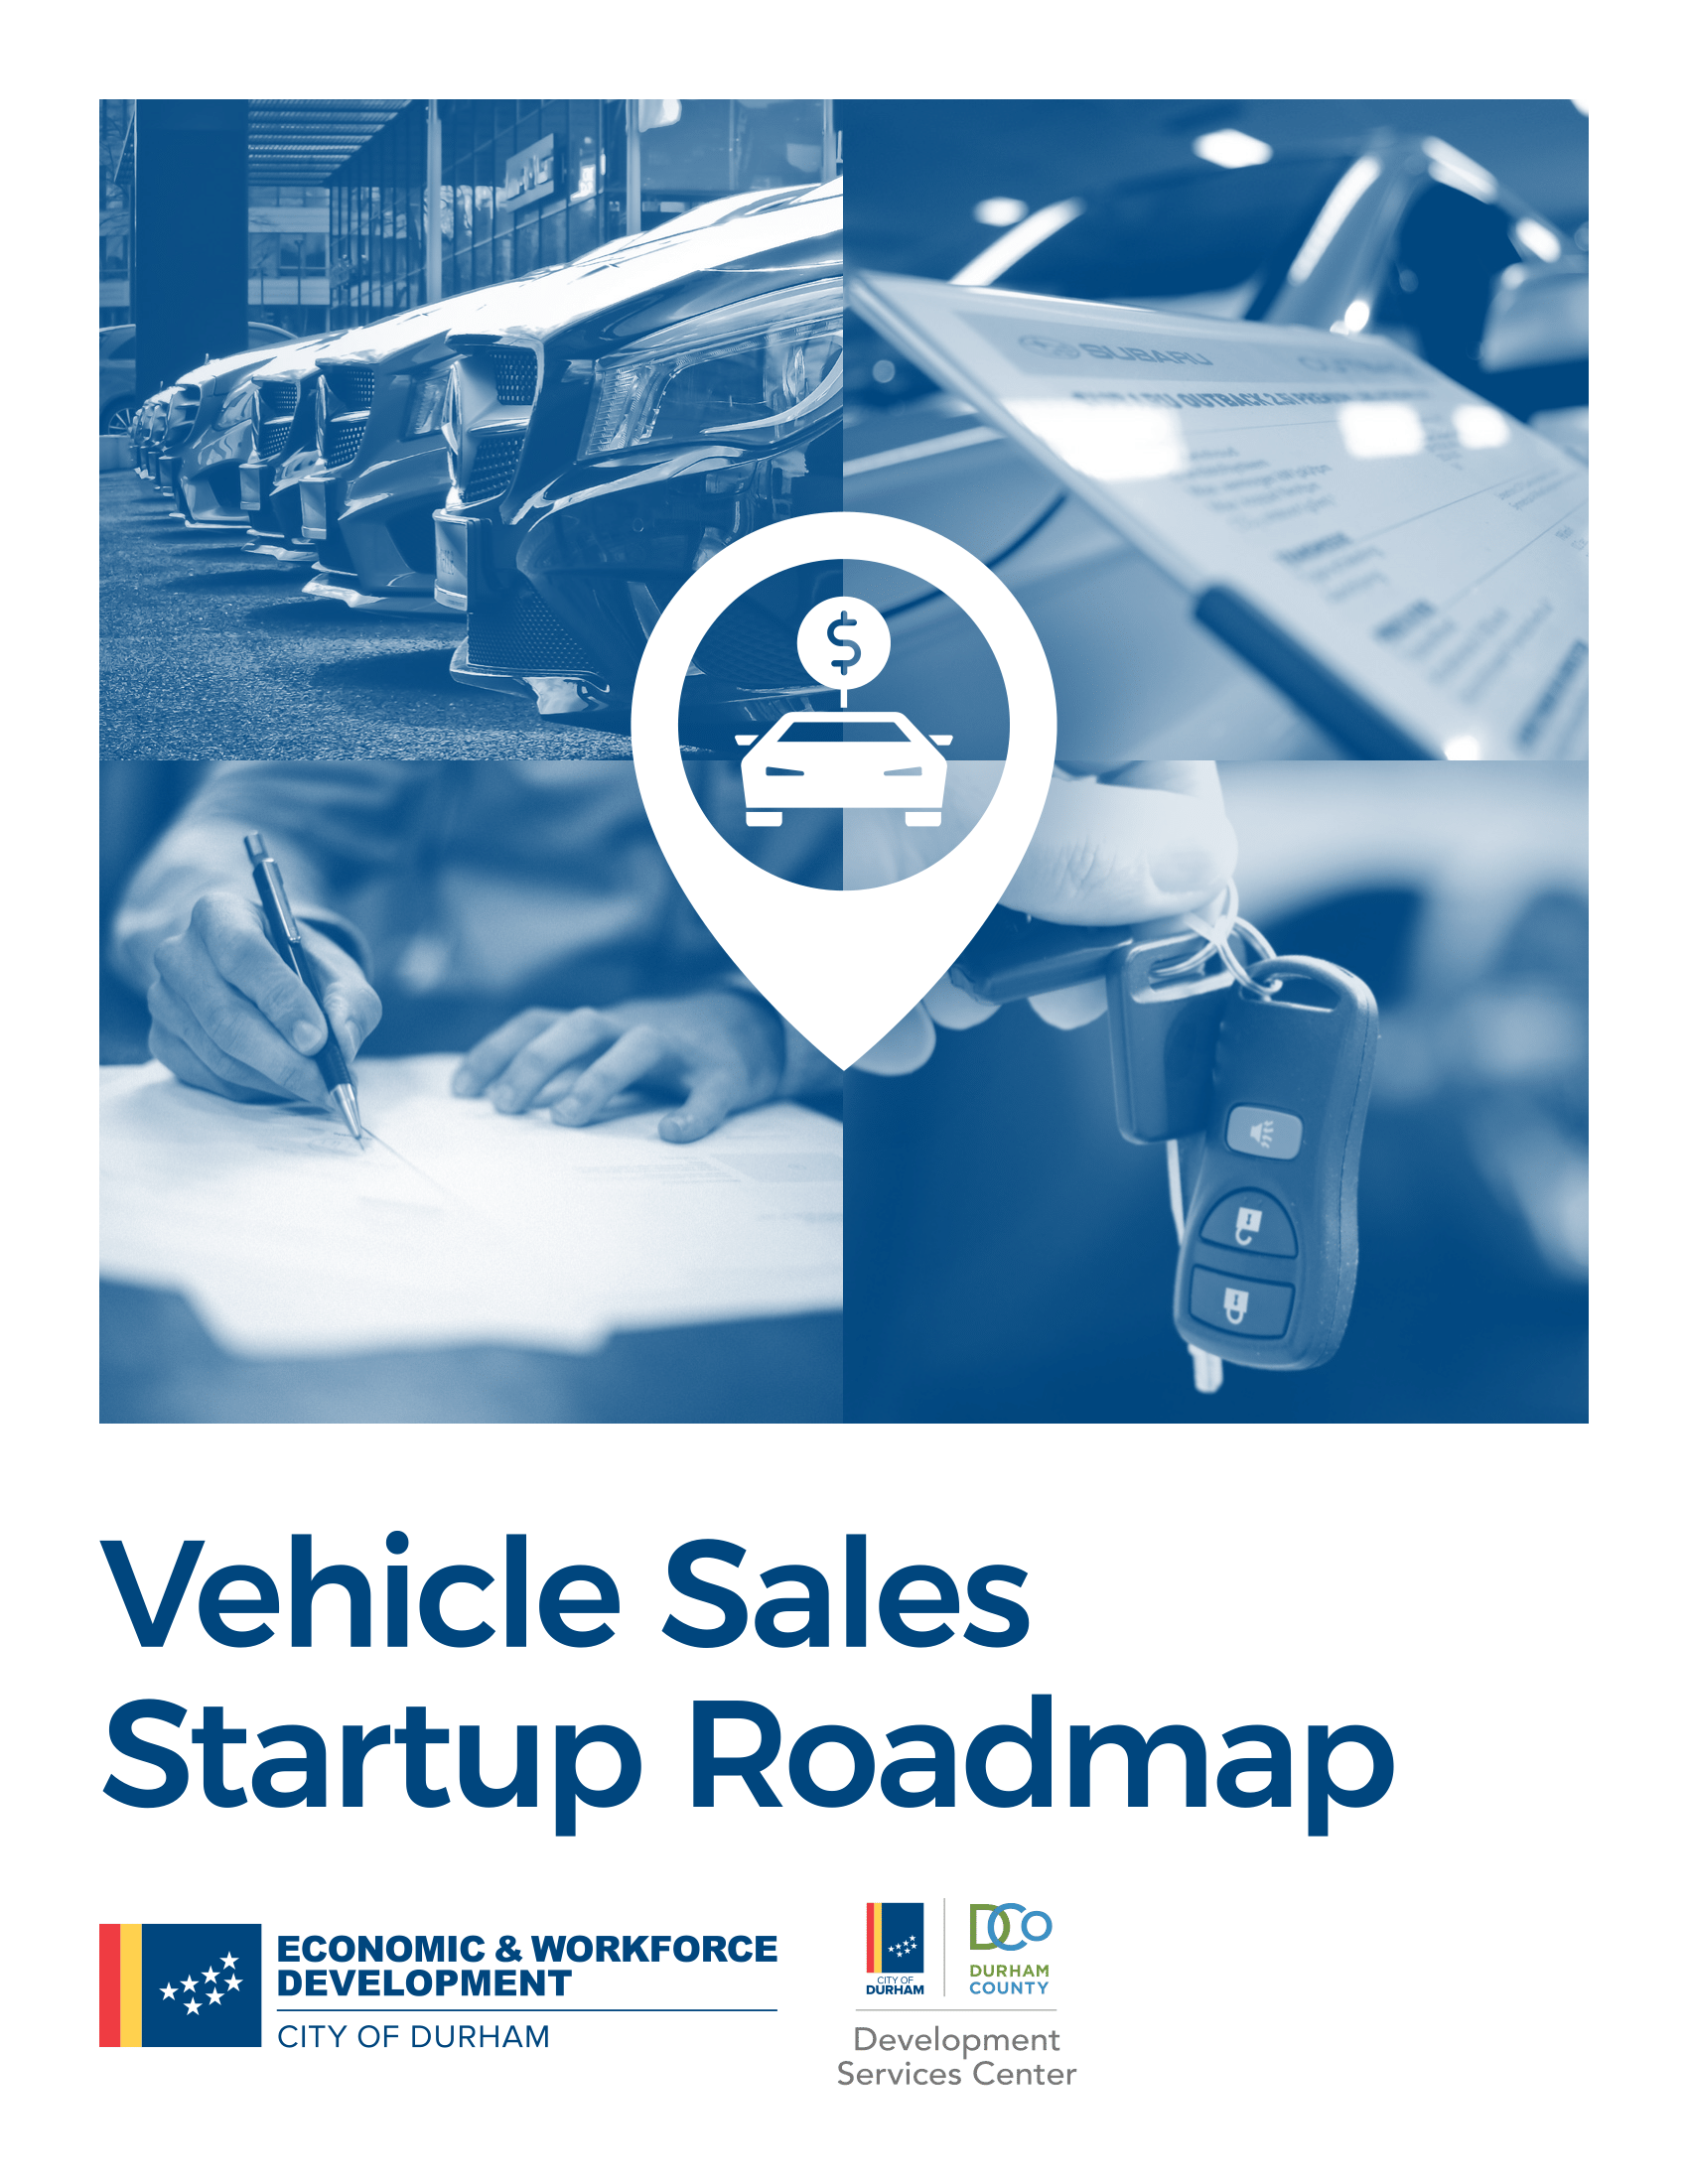 Vehicle Sales Startup Roadmap